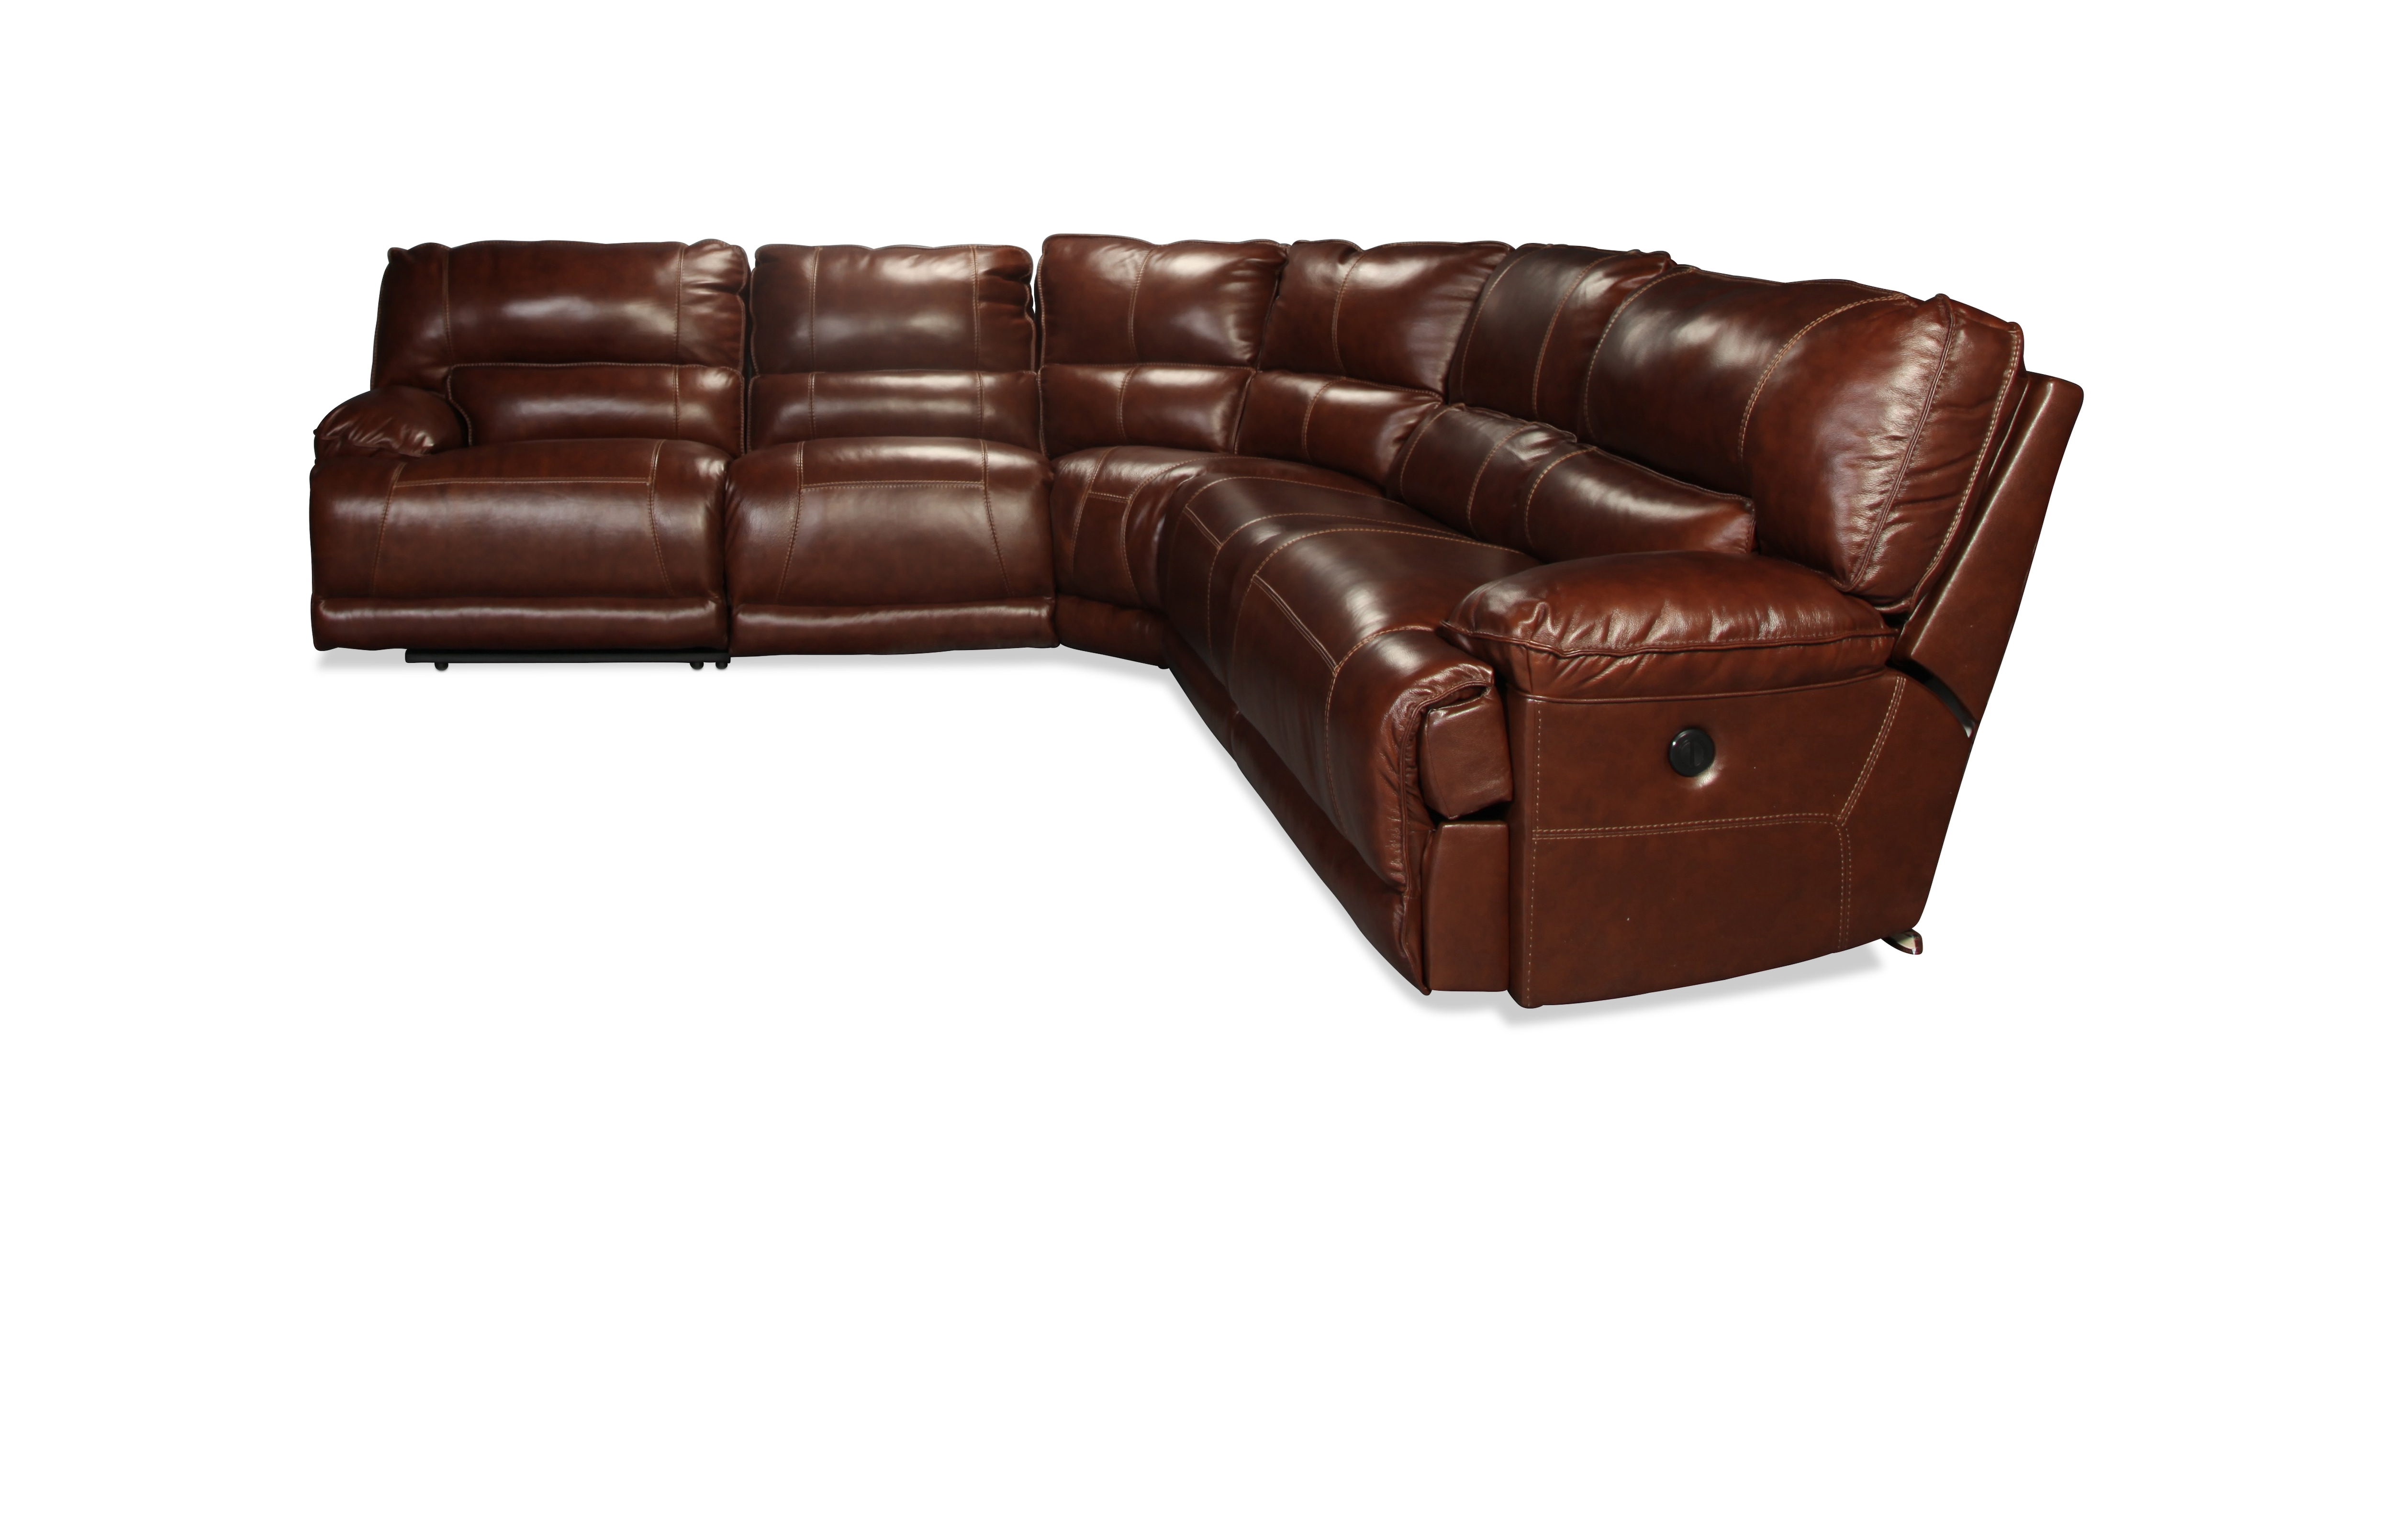 Wolcott 5 Piece Power Sectional - Saddle